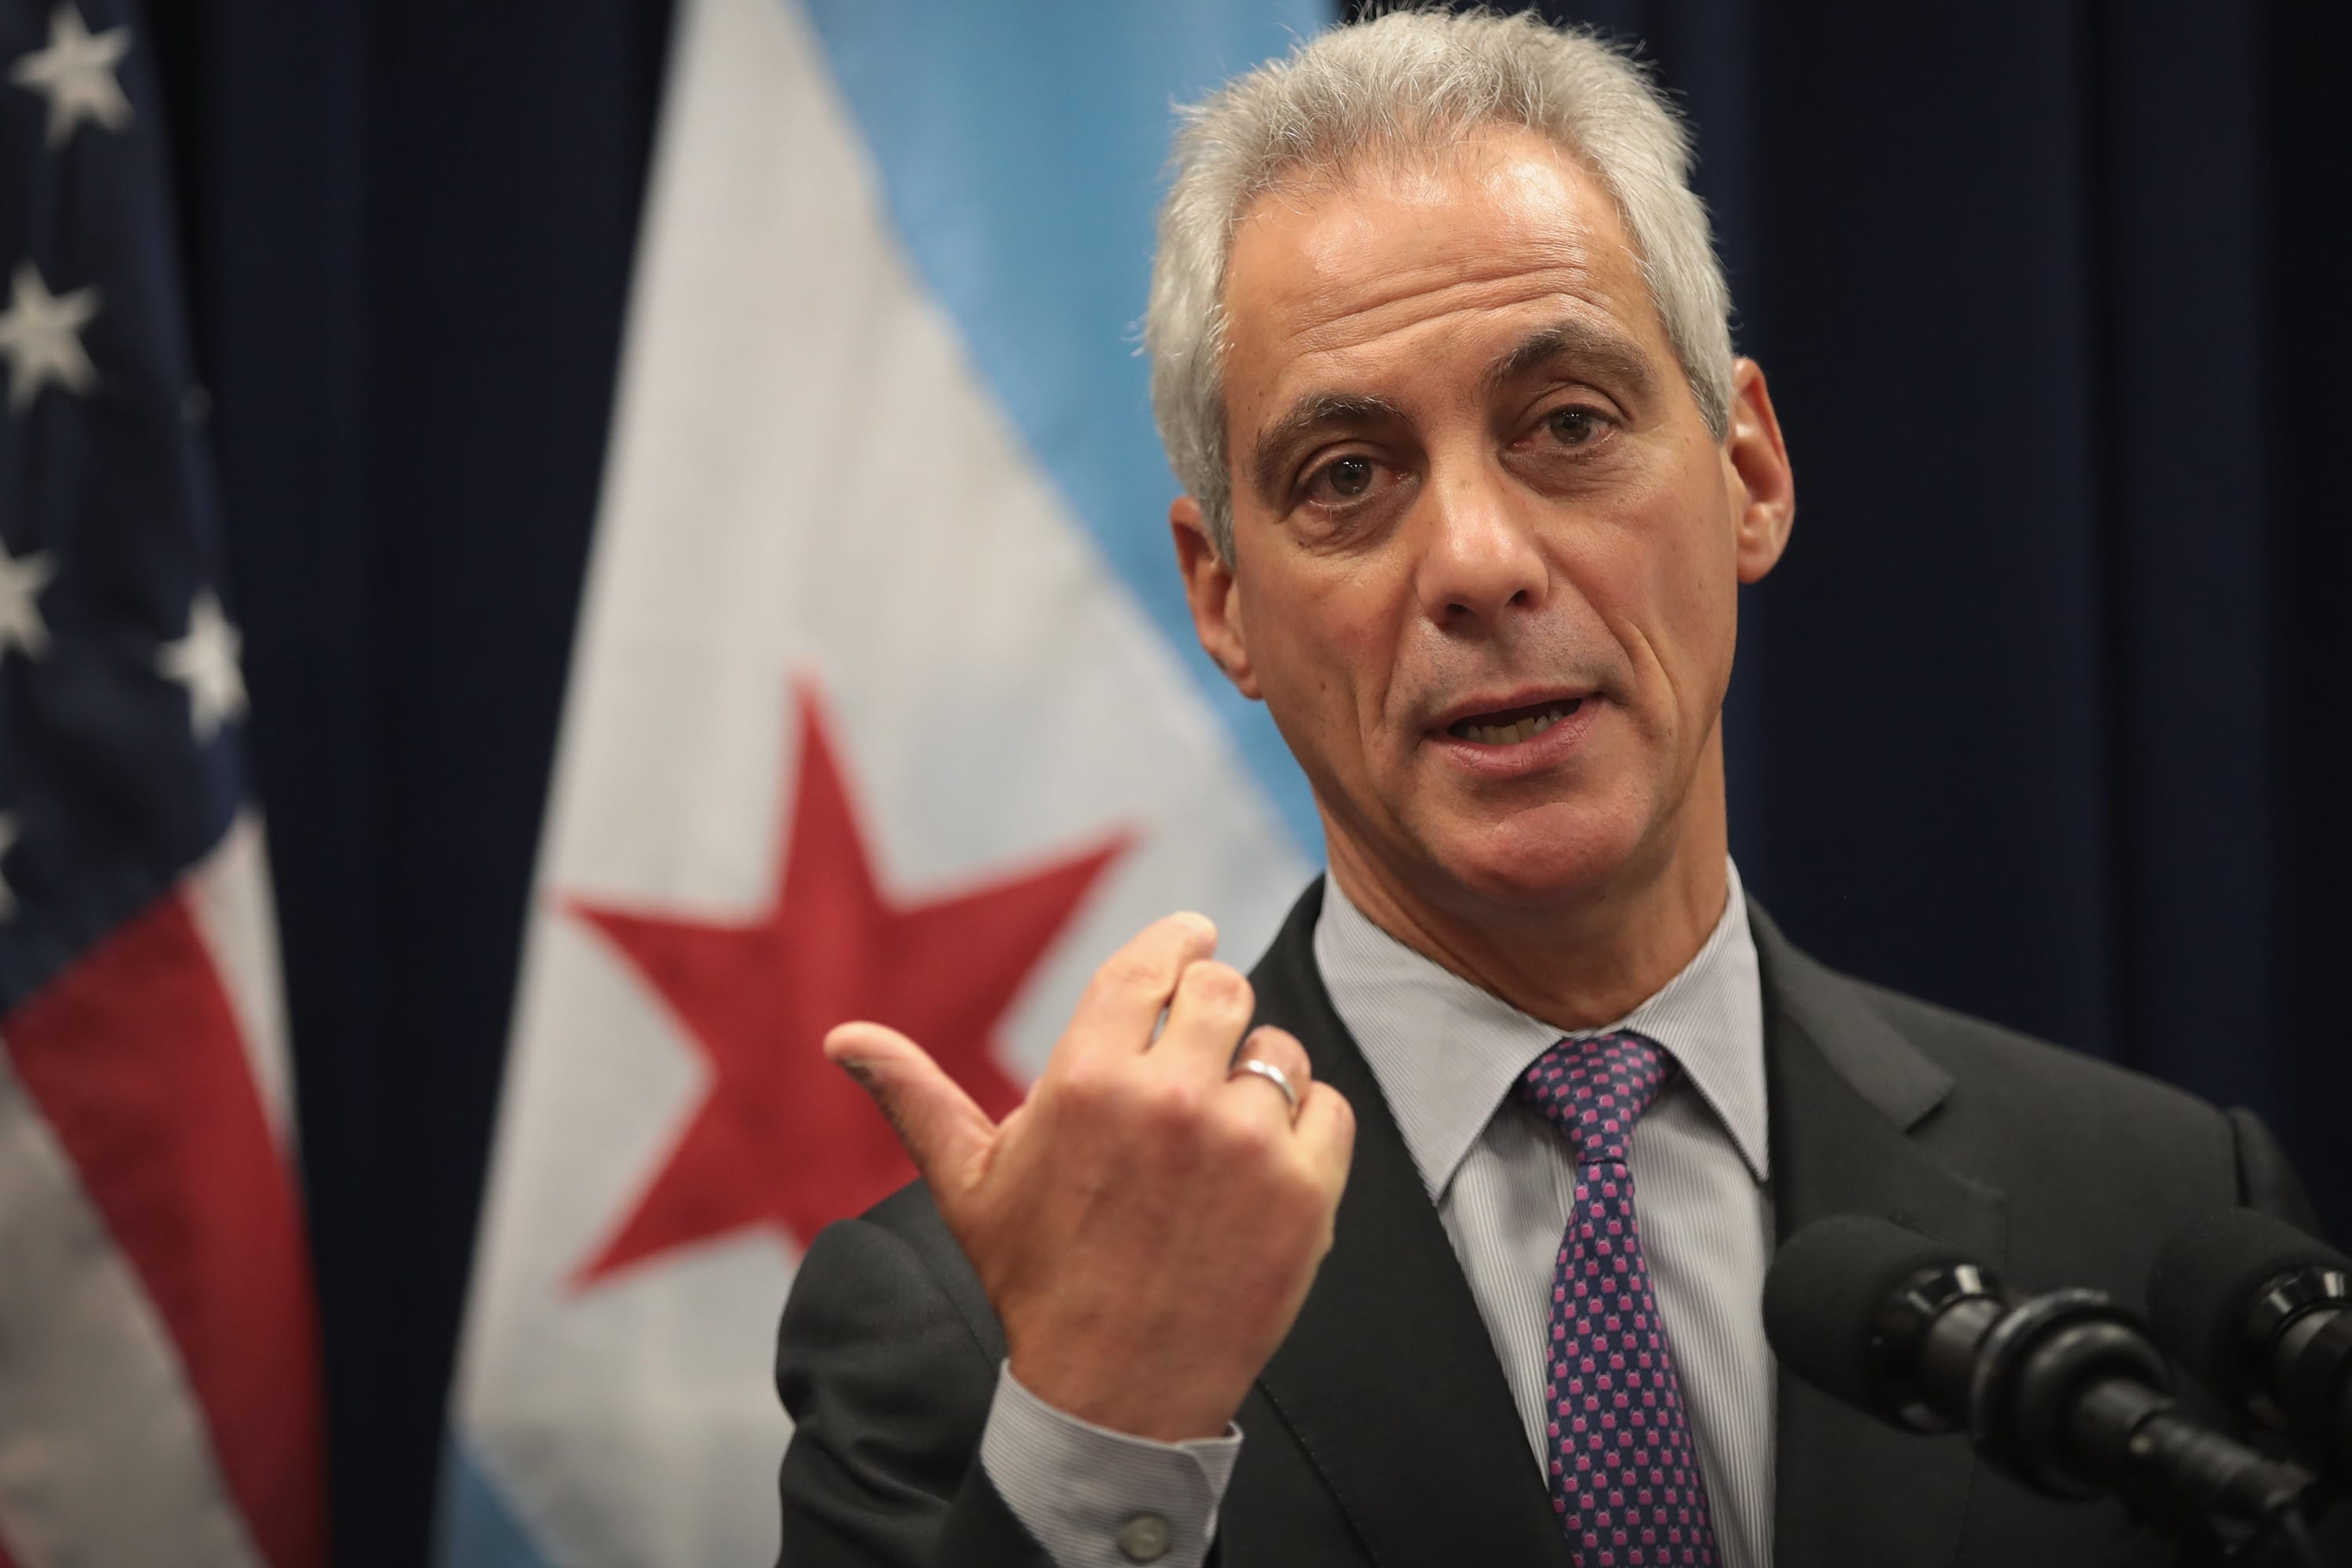 GS: Chicago Mayor Rahm Emmanuel Speaks To The Press After City Council Meeting